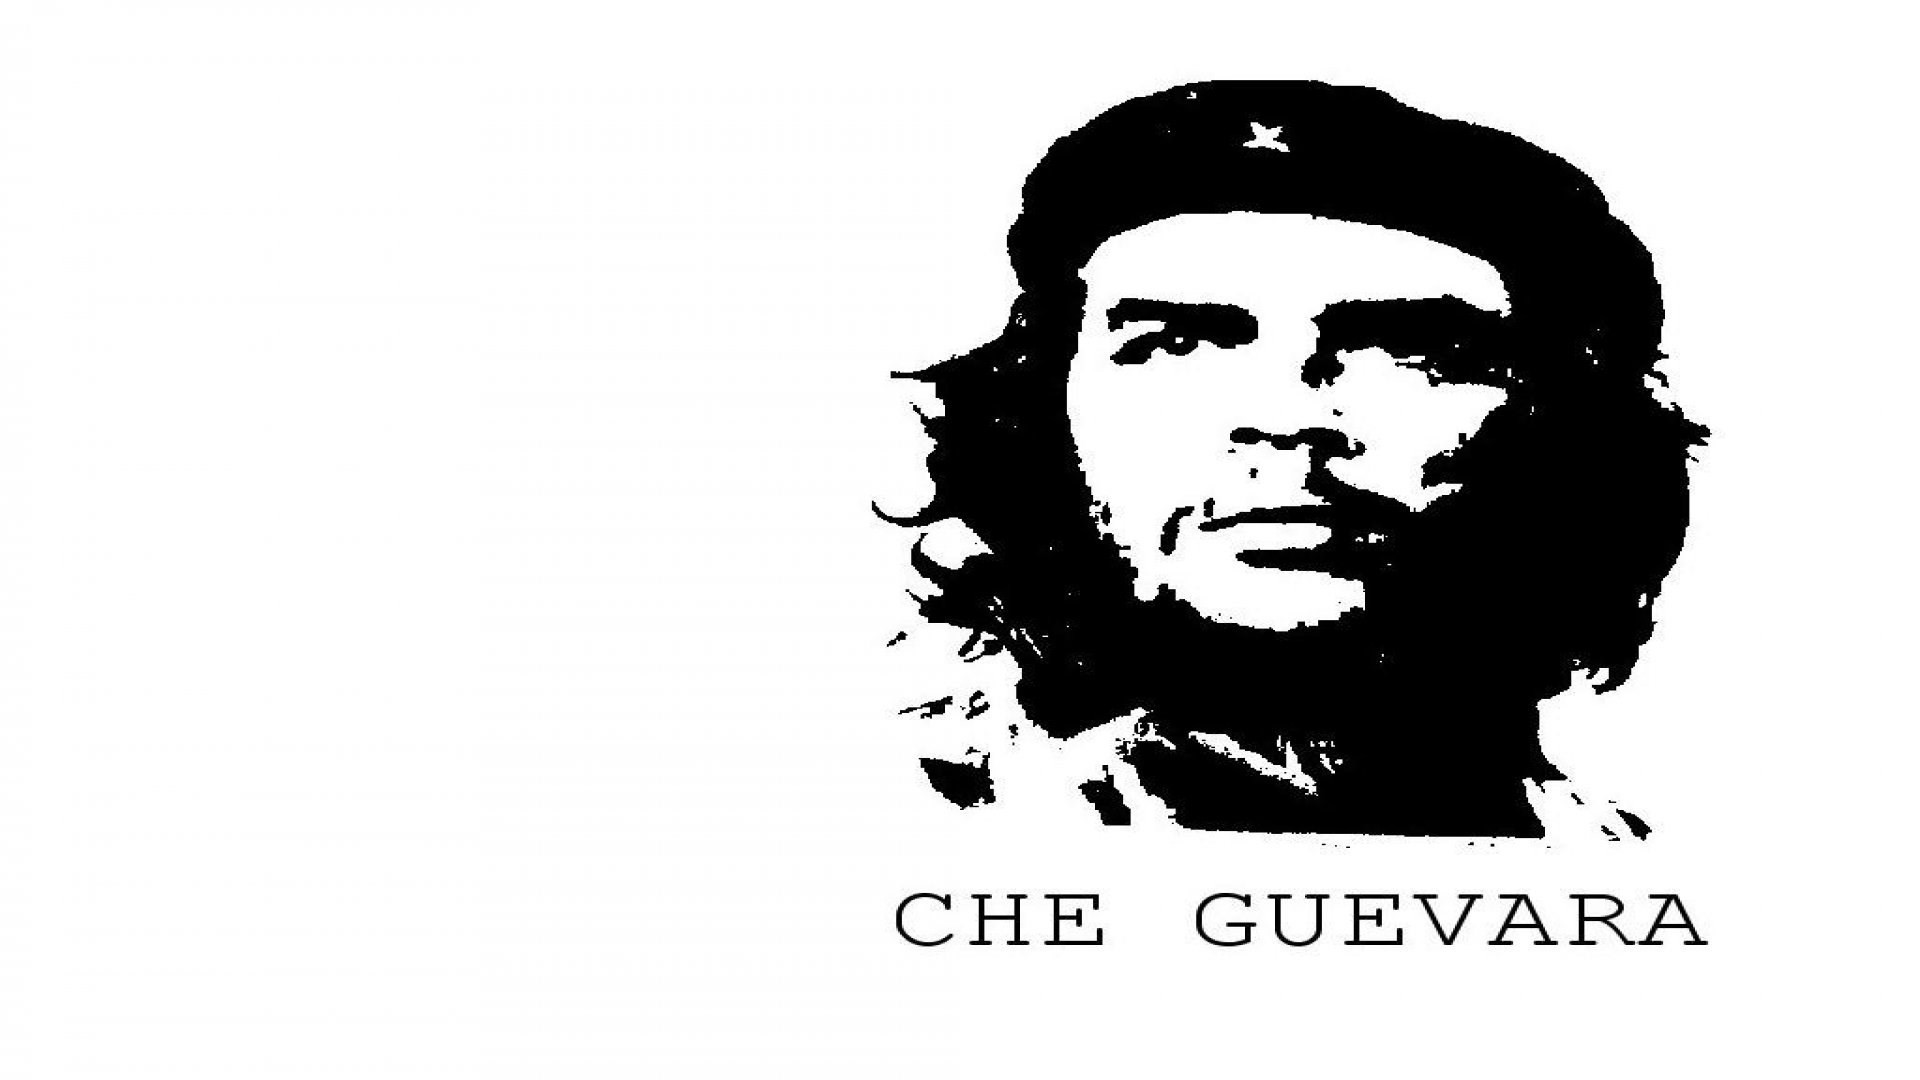 Che guevara wallpapers 55 background pictures - Che guevara hd pics ...